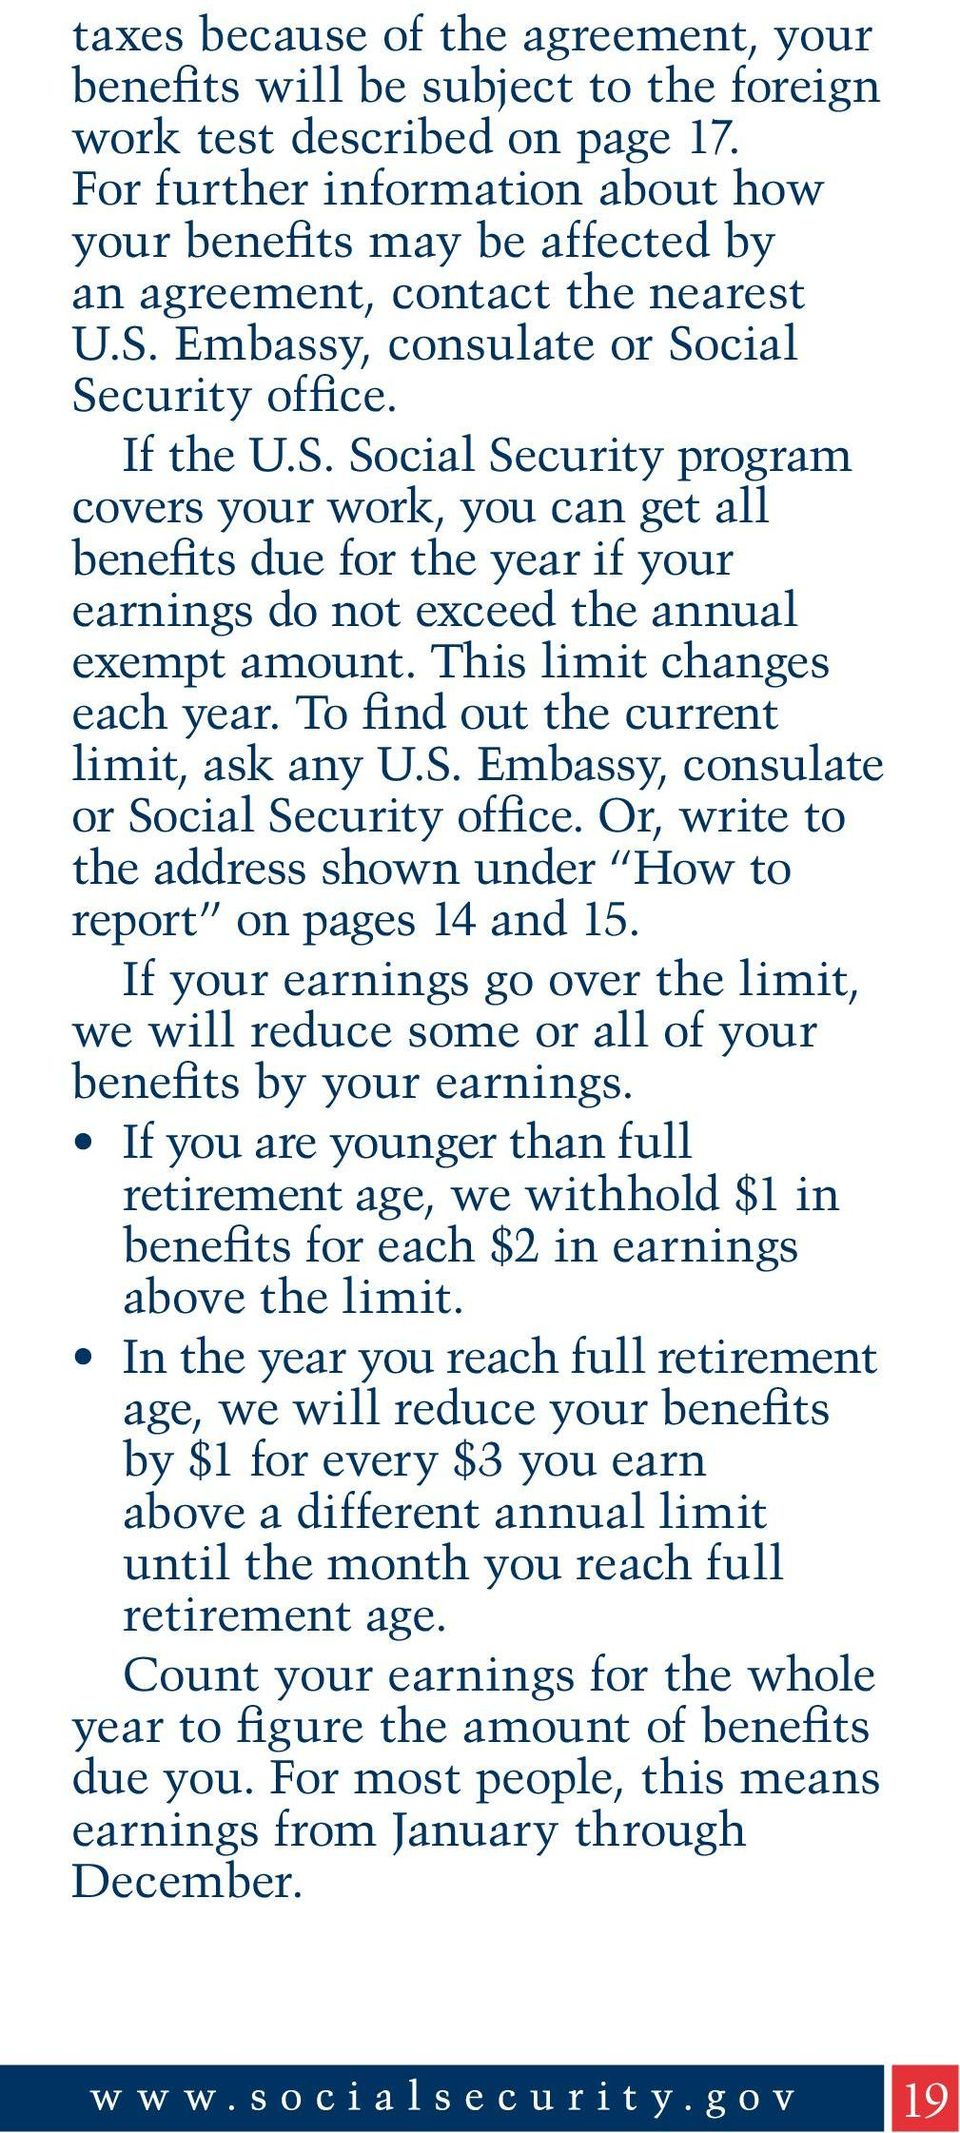 Embassy, consulate or Social Security office. If the U.S. Social Security program covers your work, you can get all benefits due for the year if your earnings do not exceed the annual exempt amount.